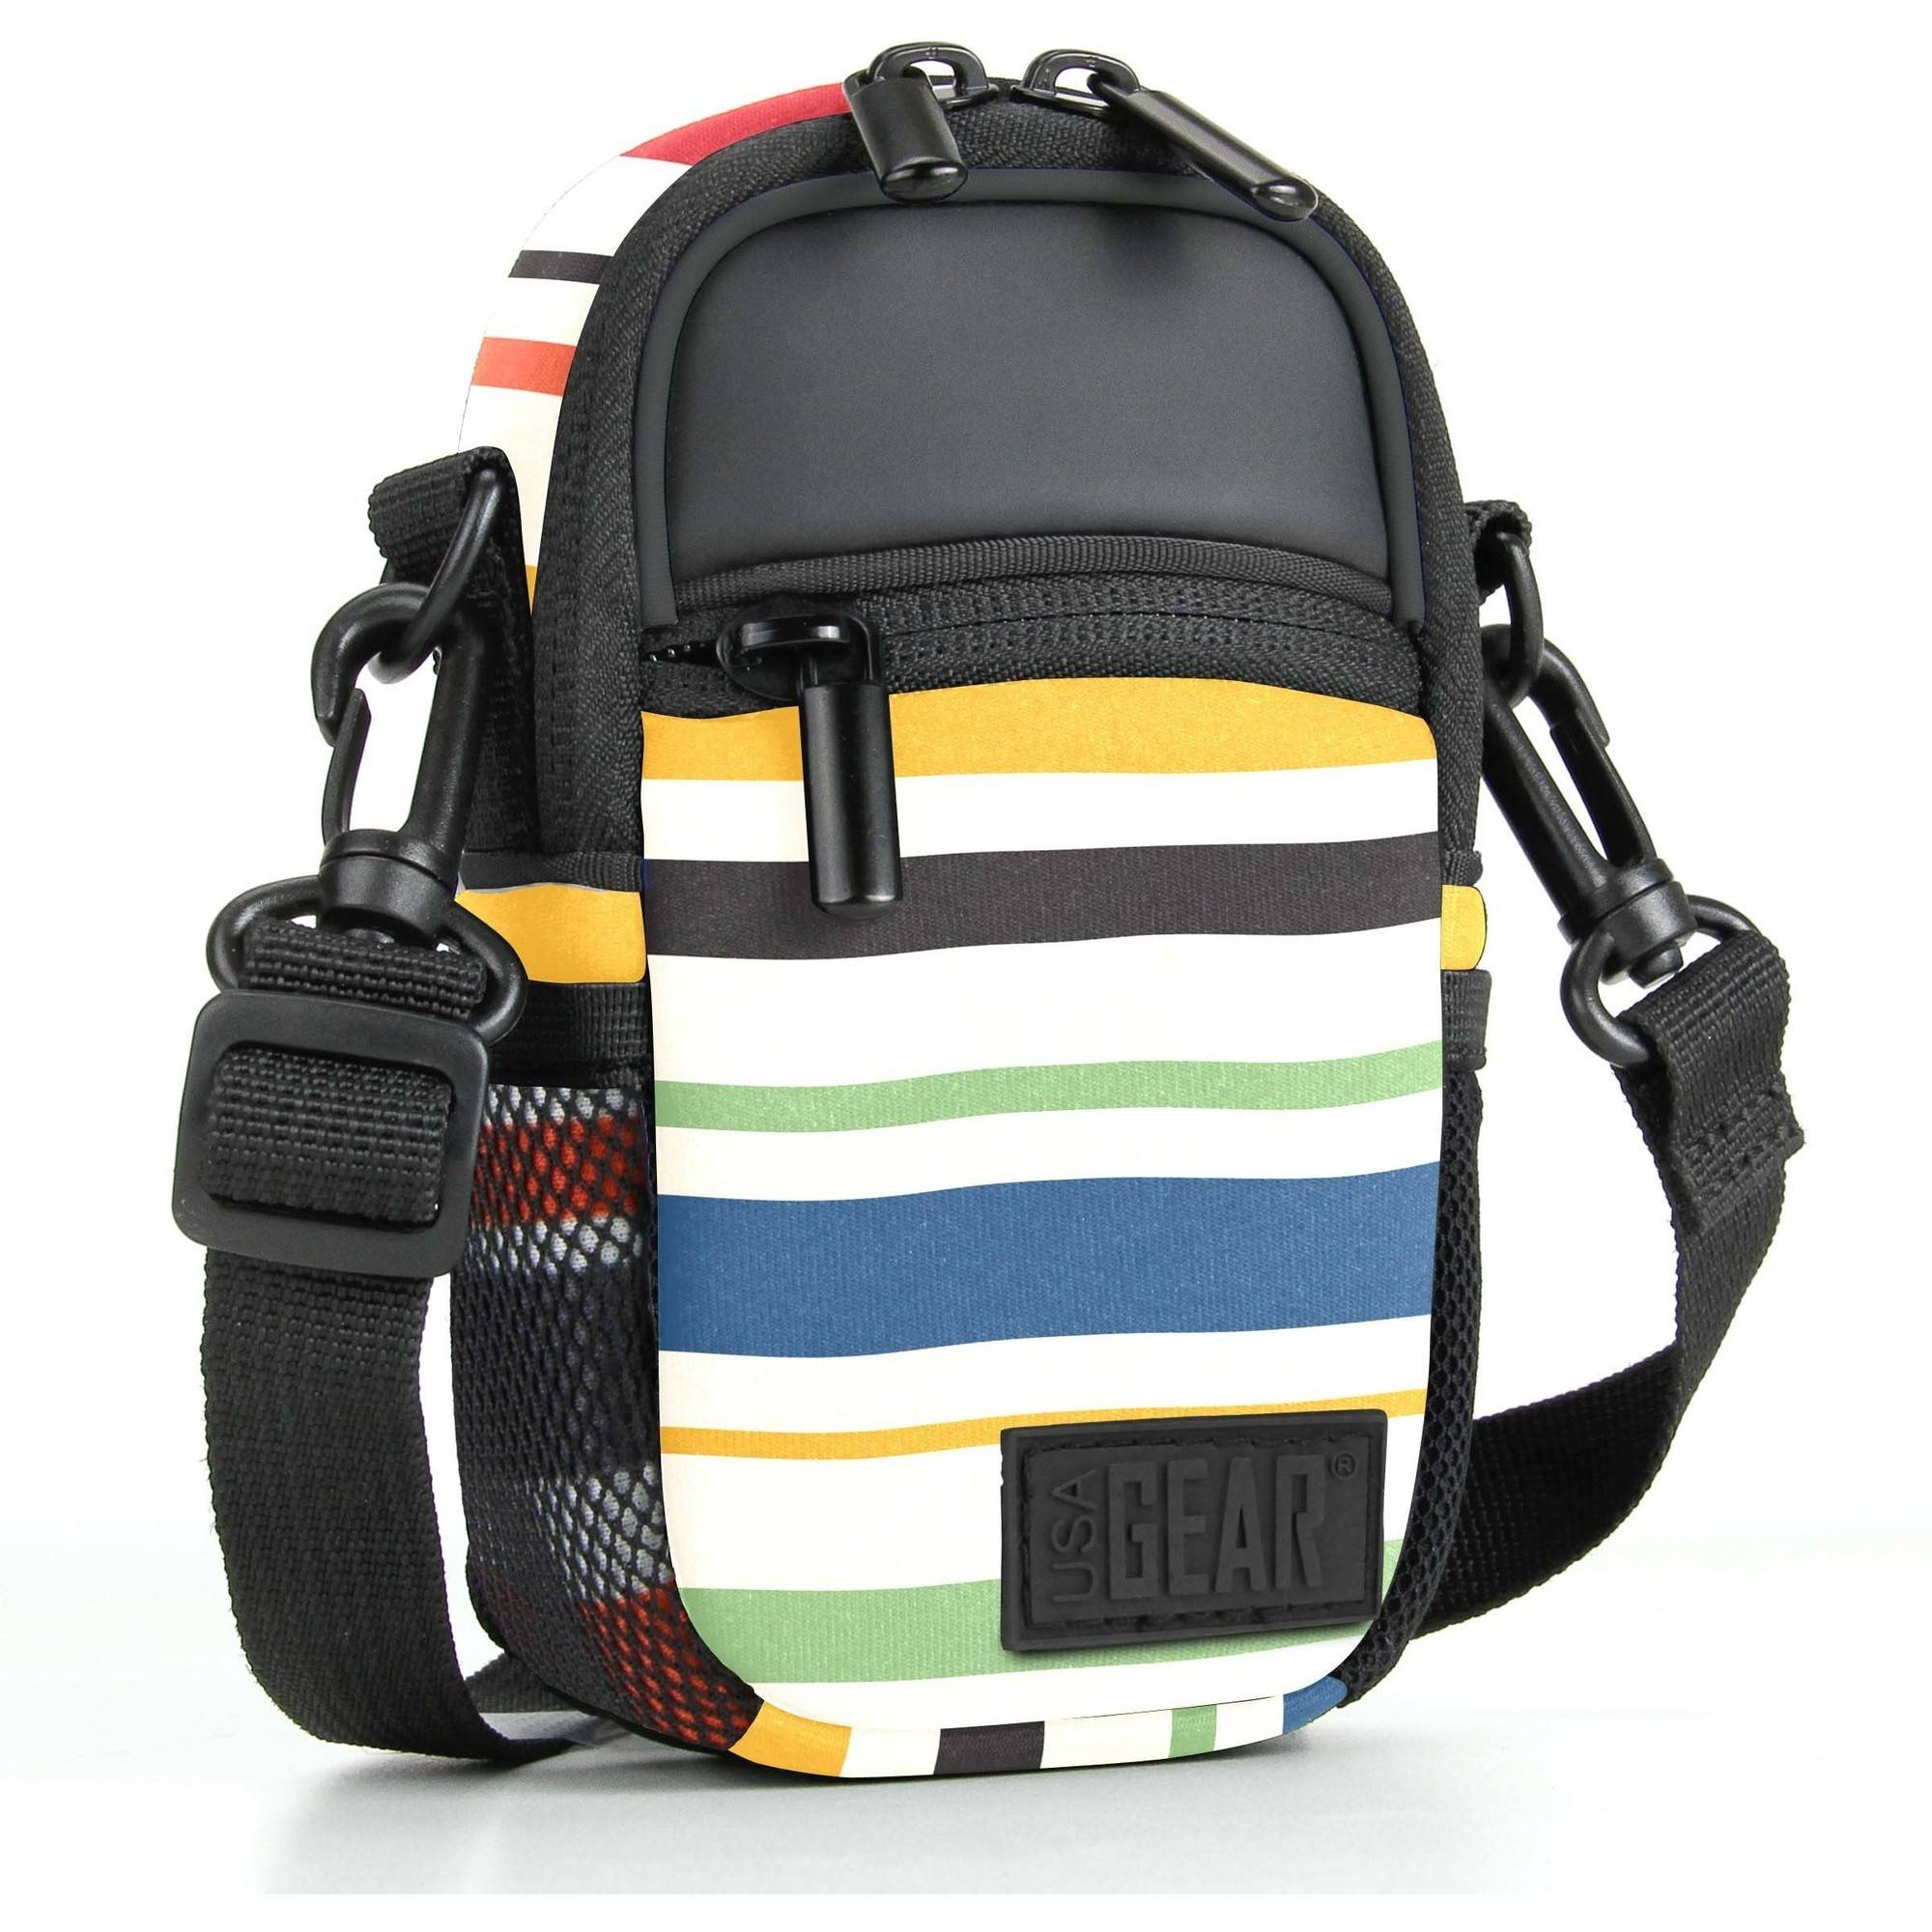 Compact Camera Bag by USA Gear with Rain Cover and Shoulder Sling Strap Works With Olympus Tough TG-4 , TG-860... by USA Gear